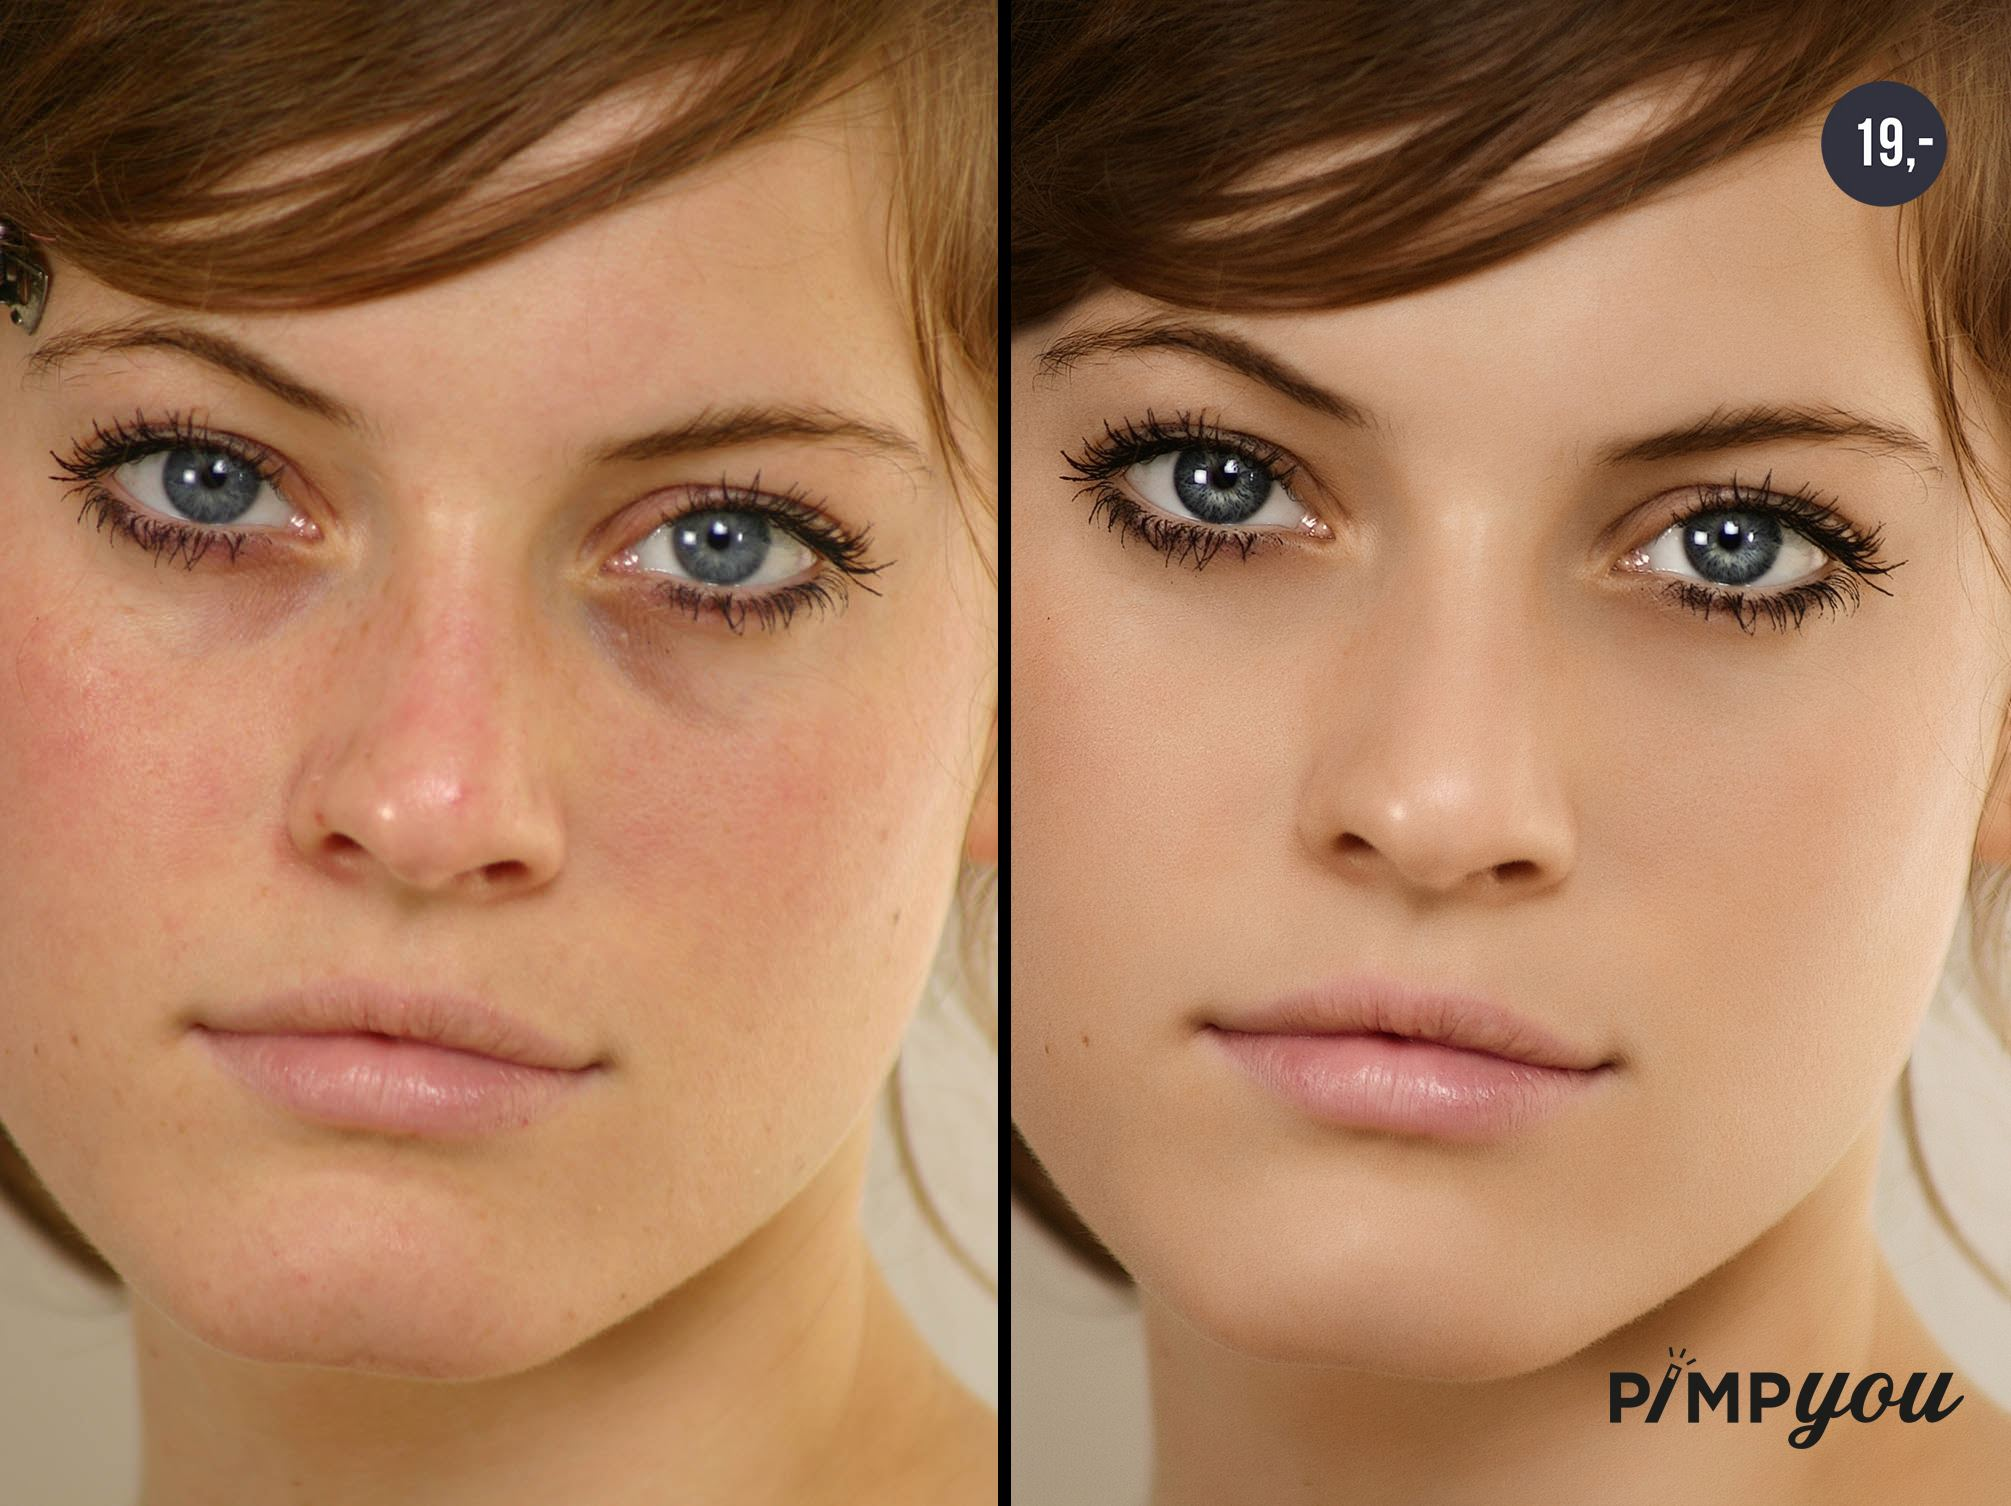 Removing pimples from photographs